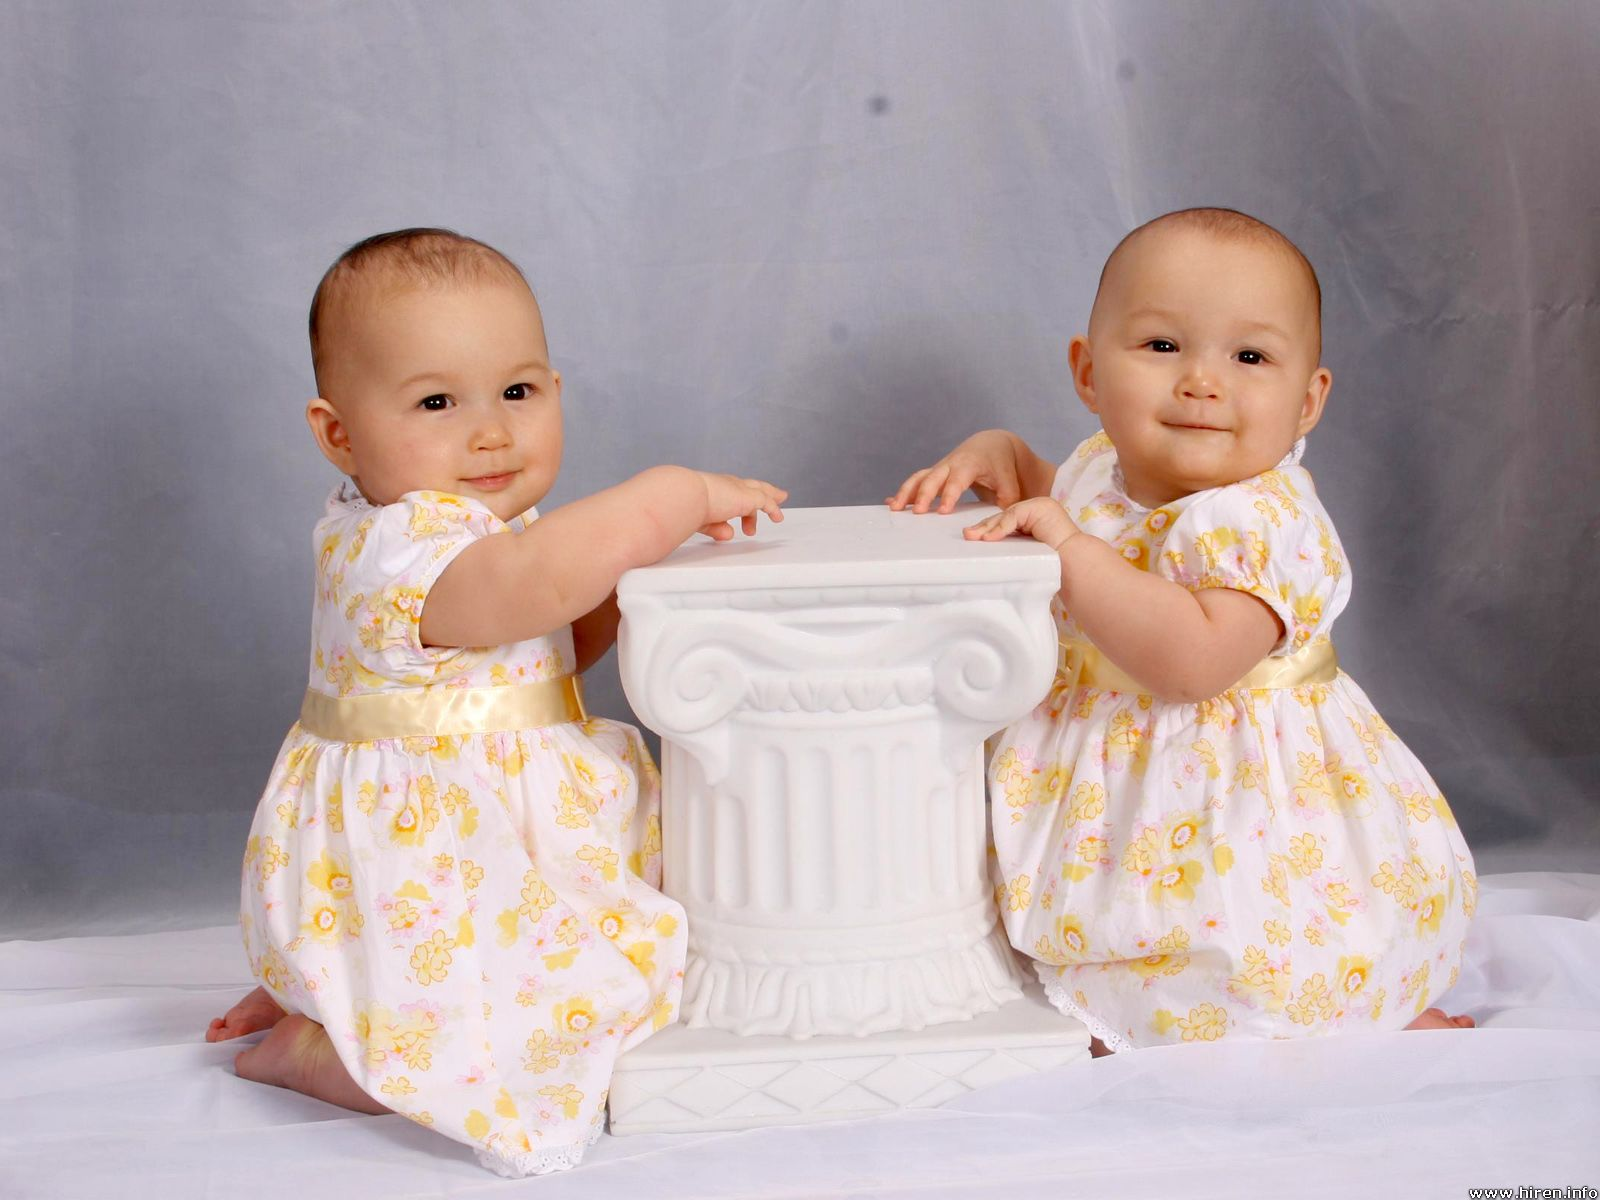 Buy baby shoes online